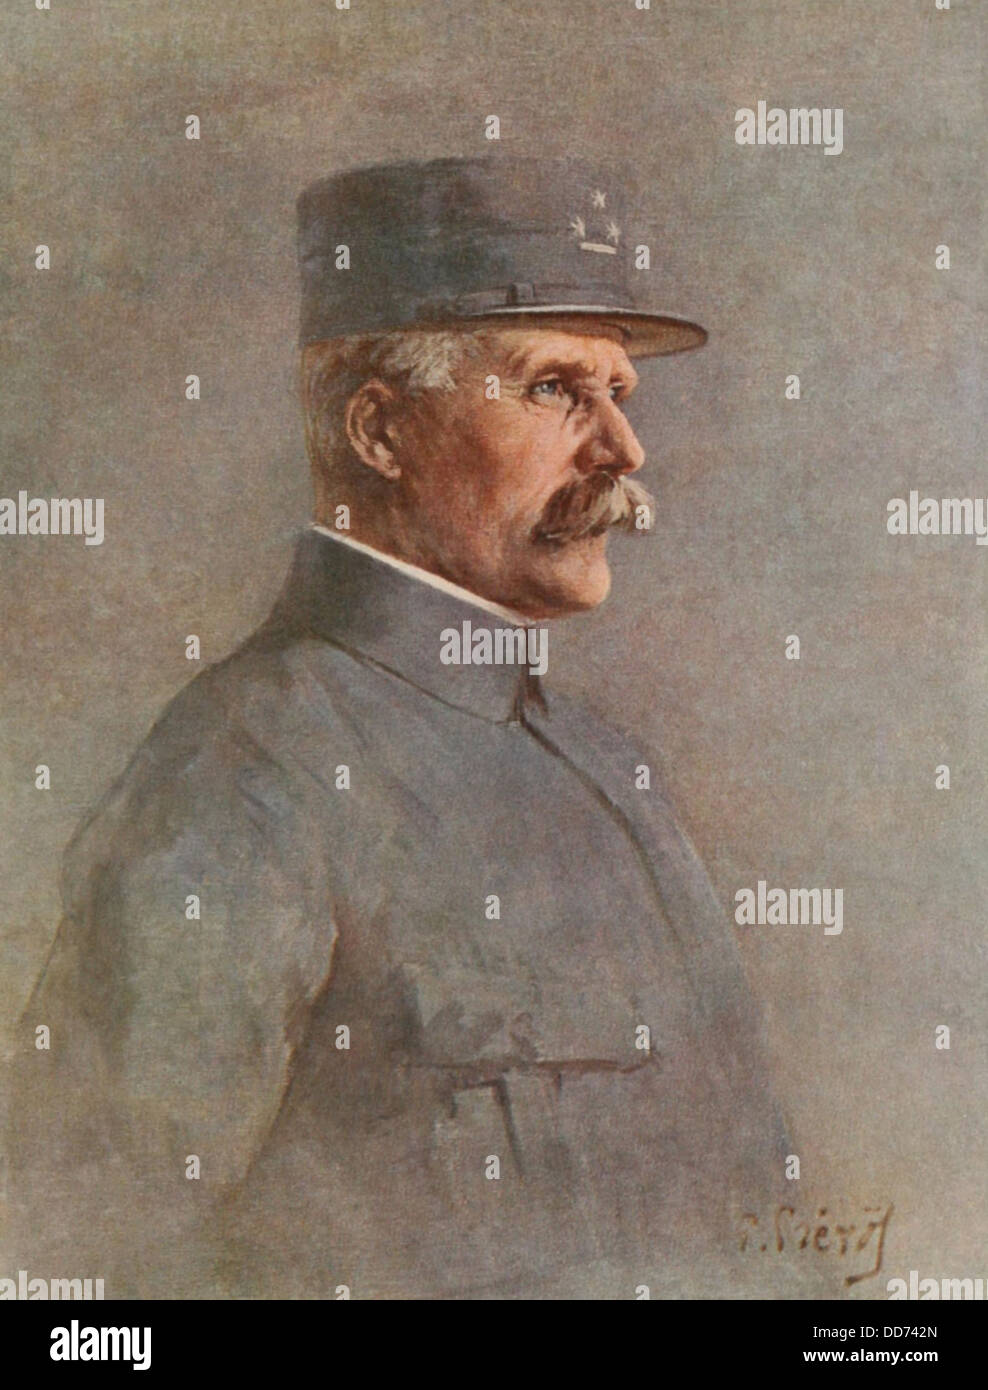 Henri Philippe Petain, Commander-in-Chief of the Armies of France from 1917-18. (BSLOC_2013_5_37) - Stock Image